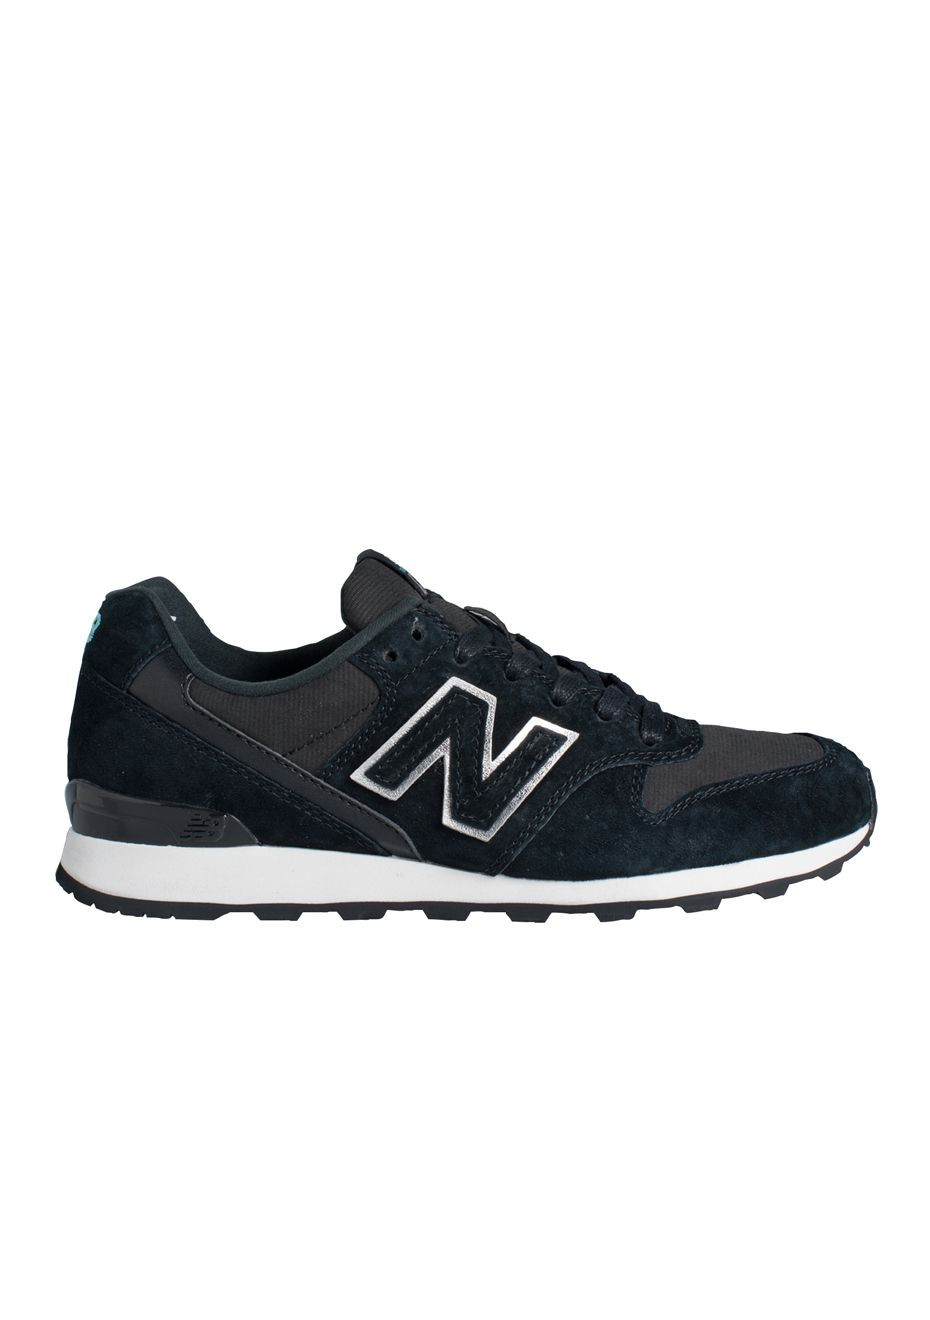 Womens New Balance - WR996EF | Black suede shoes, Suede ...